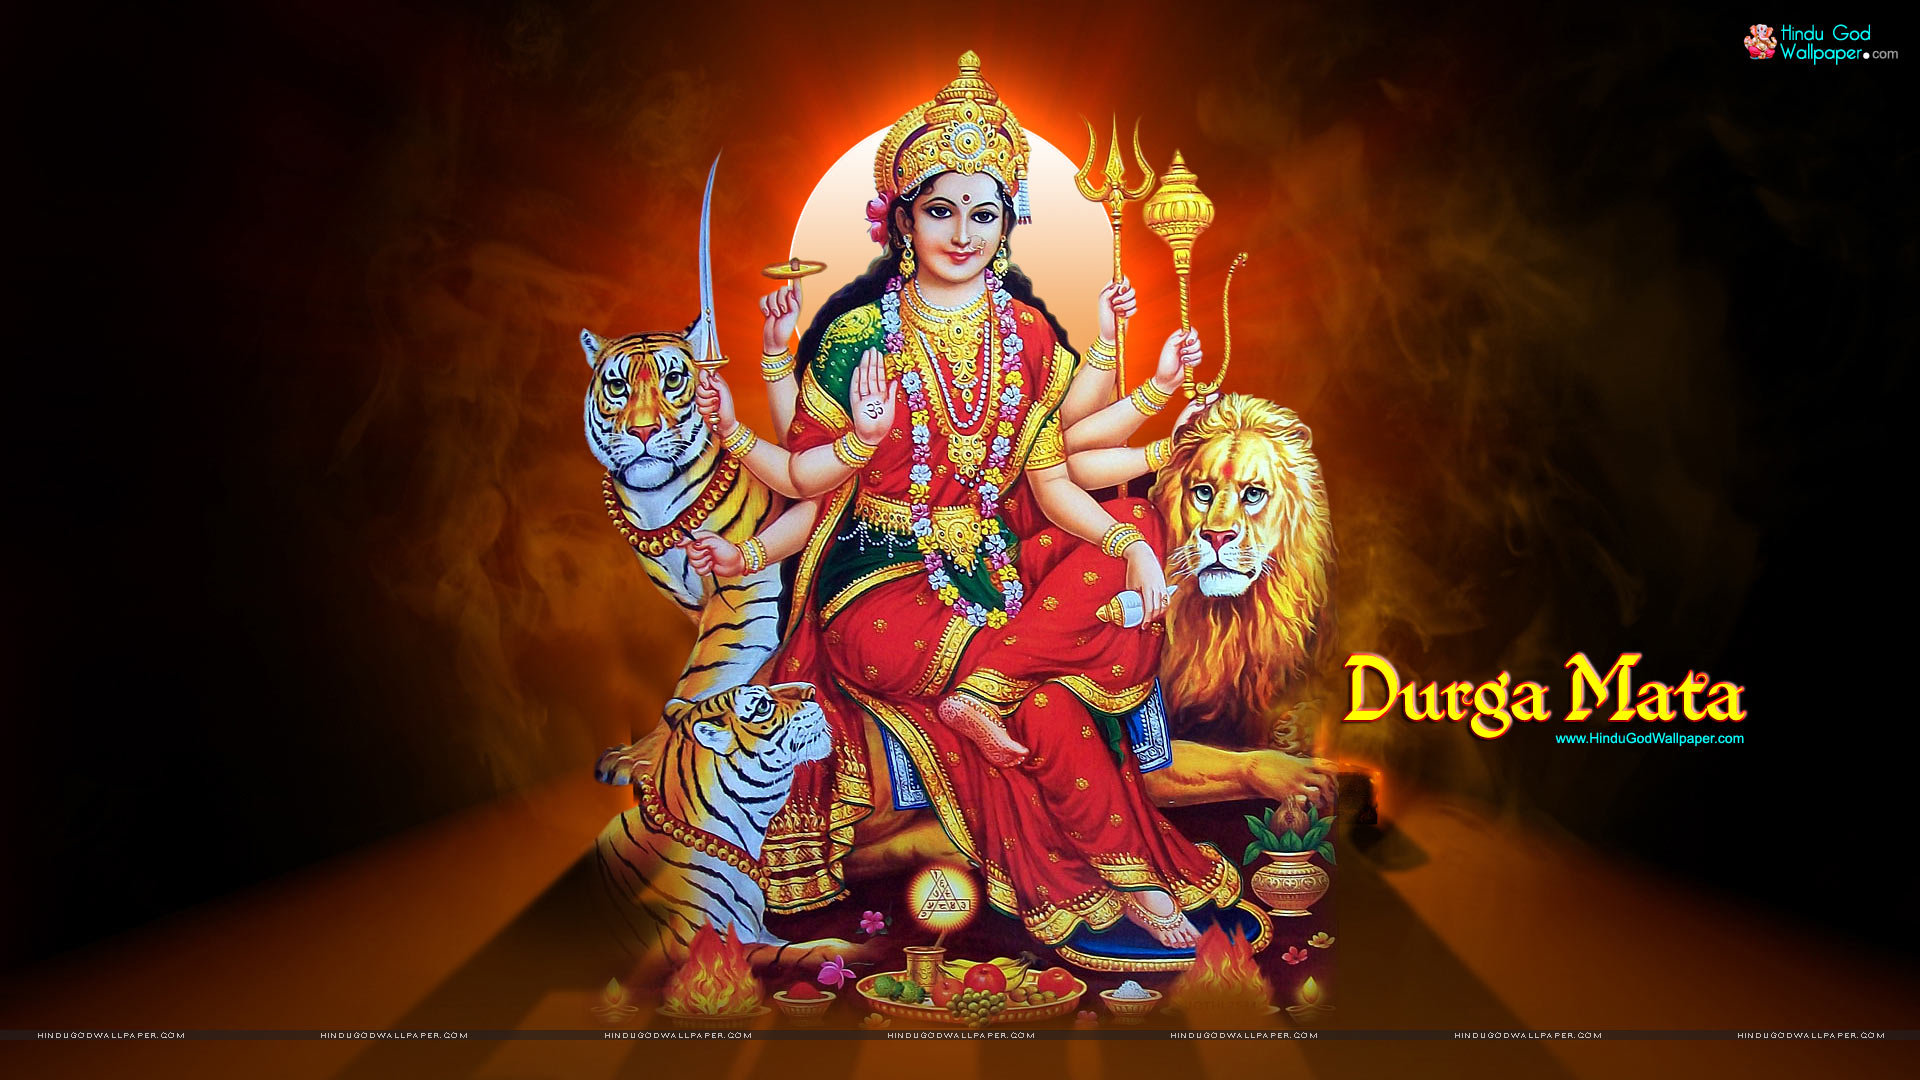 Wallpaper download durga maa - Goddess Durga Hd Widescreen Wallpaper Download